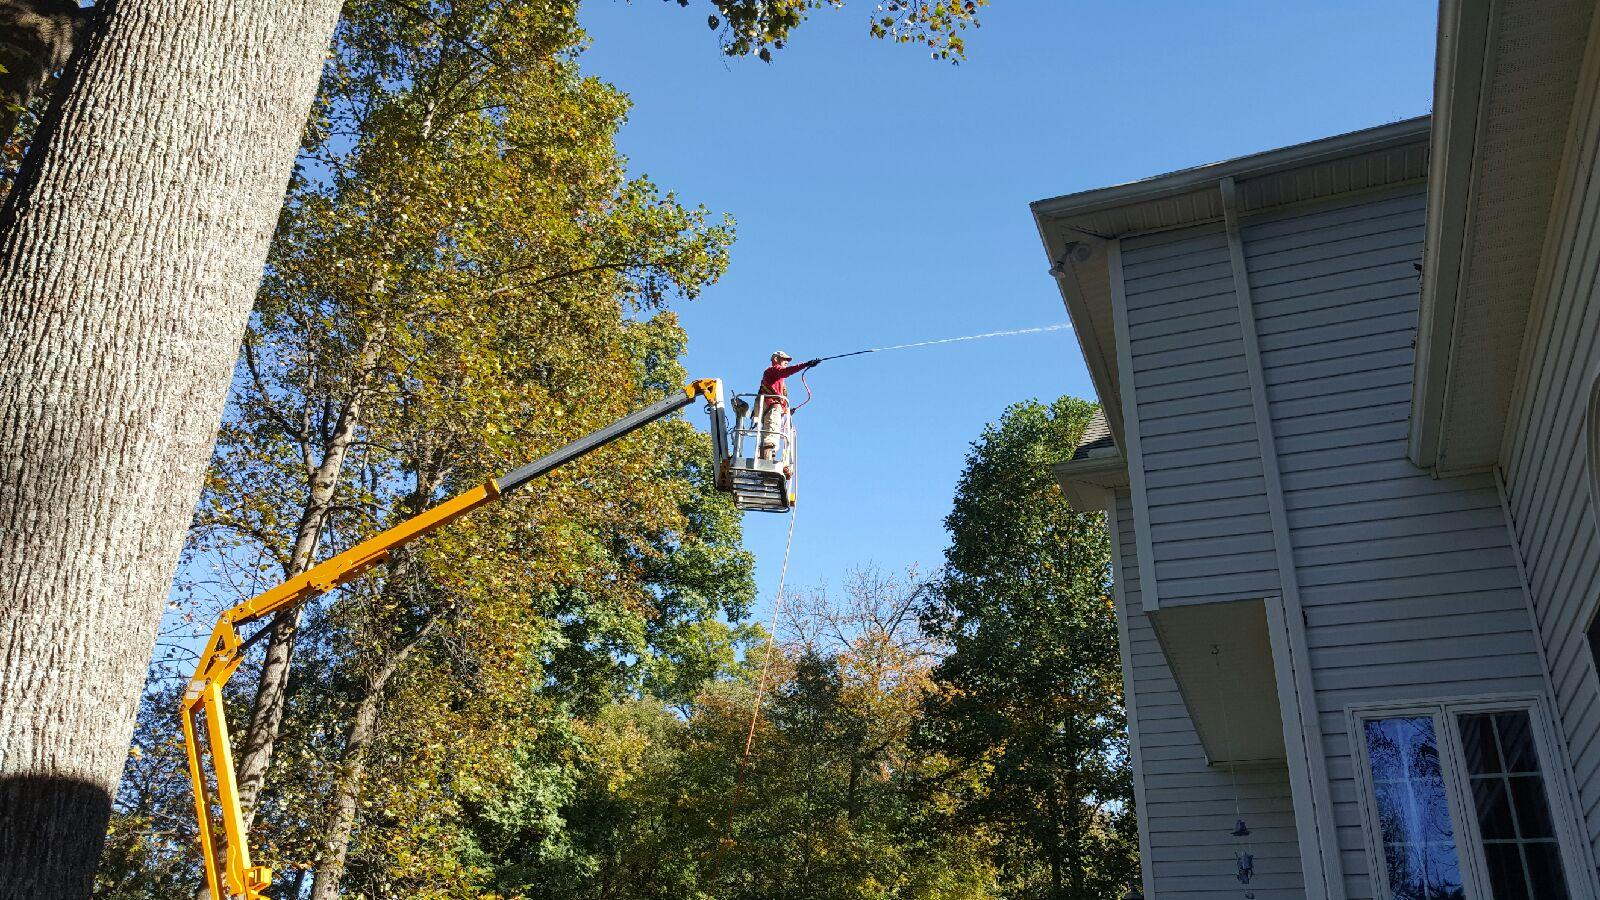 Boom Lift | Roof Cleaning Company in Hagerstown MD